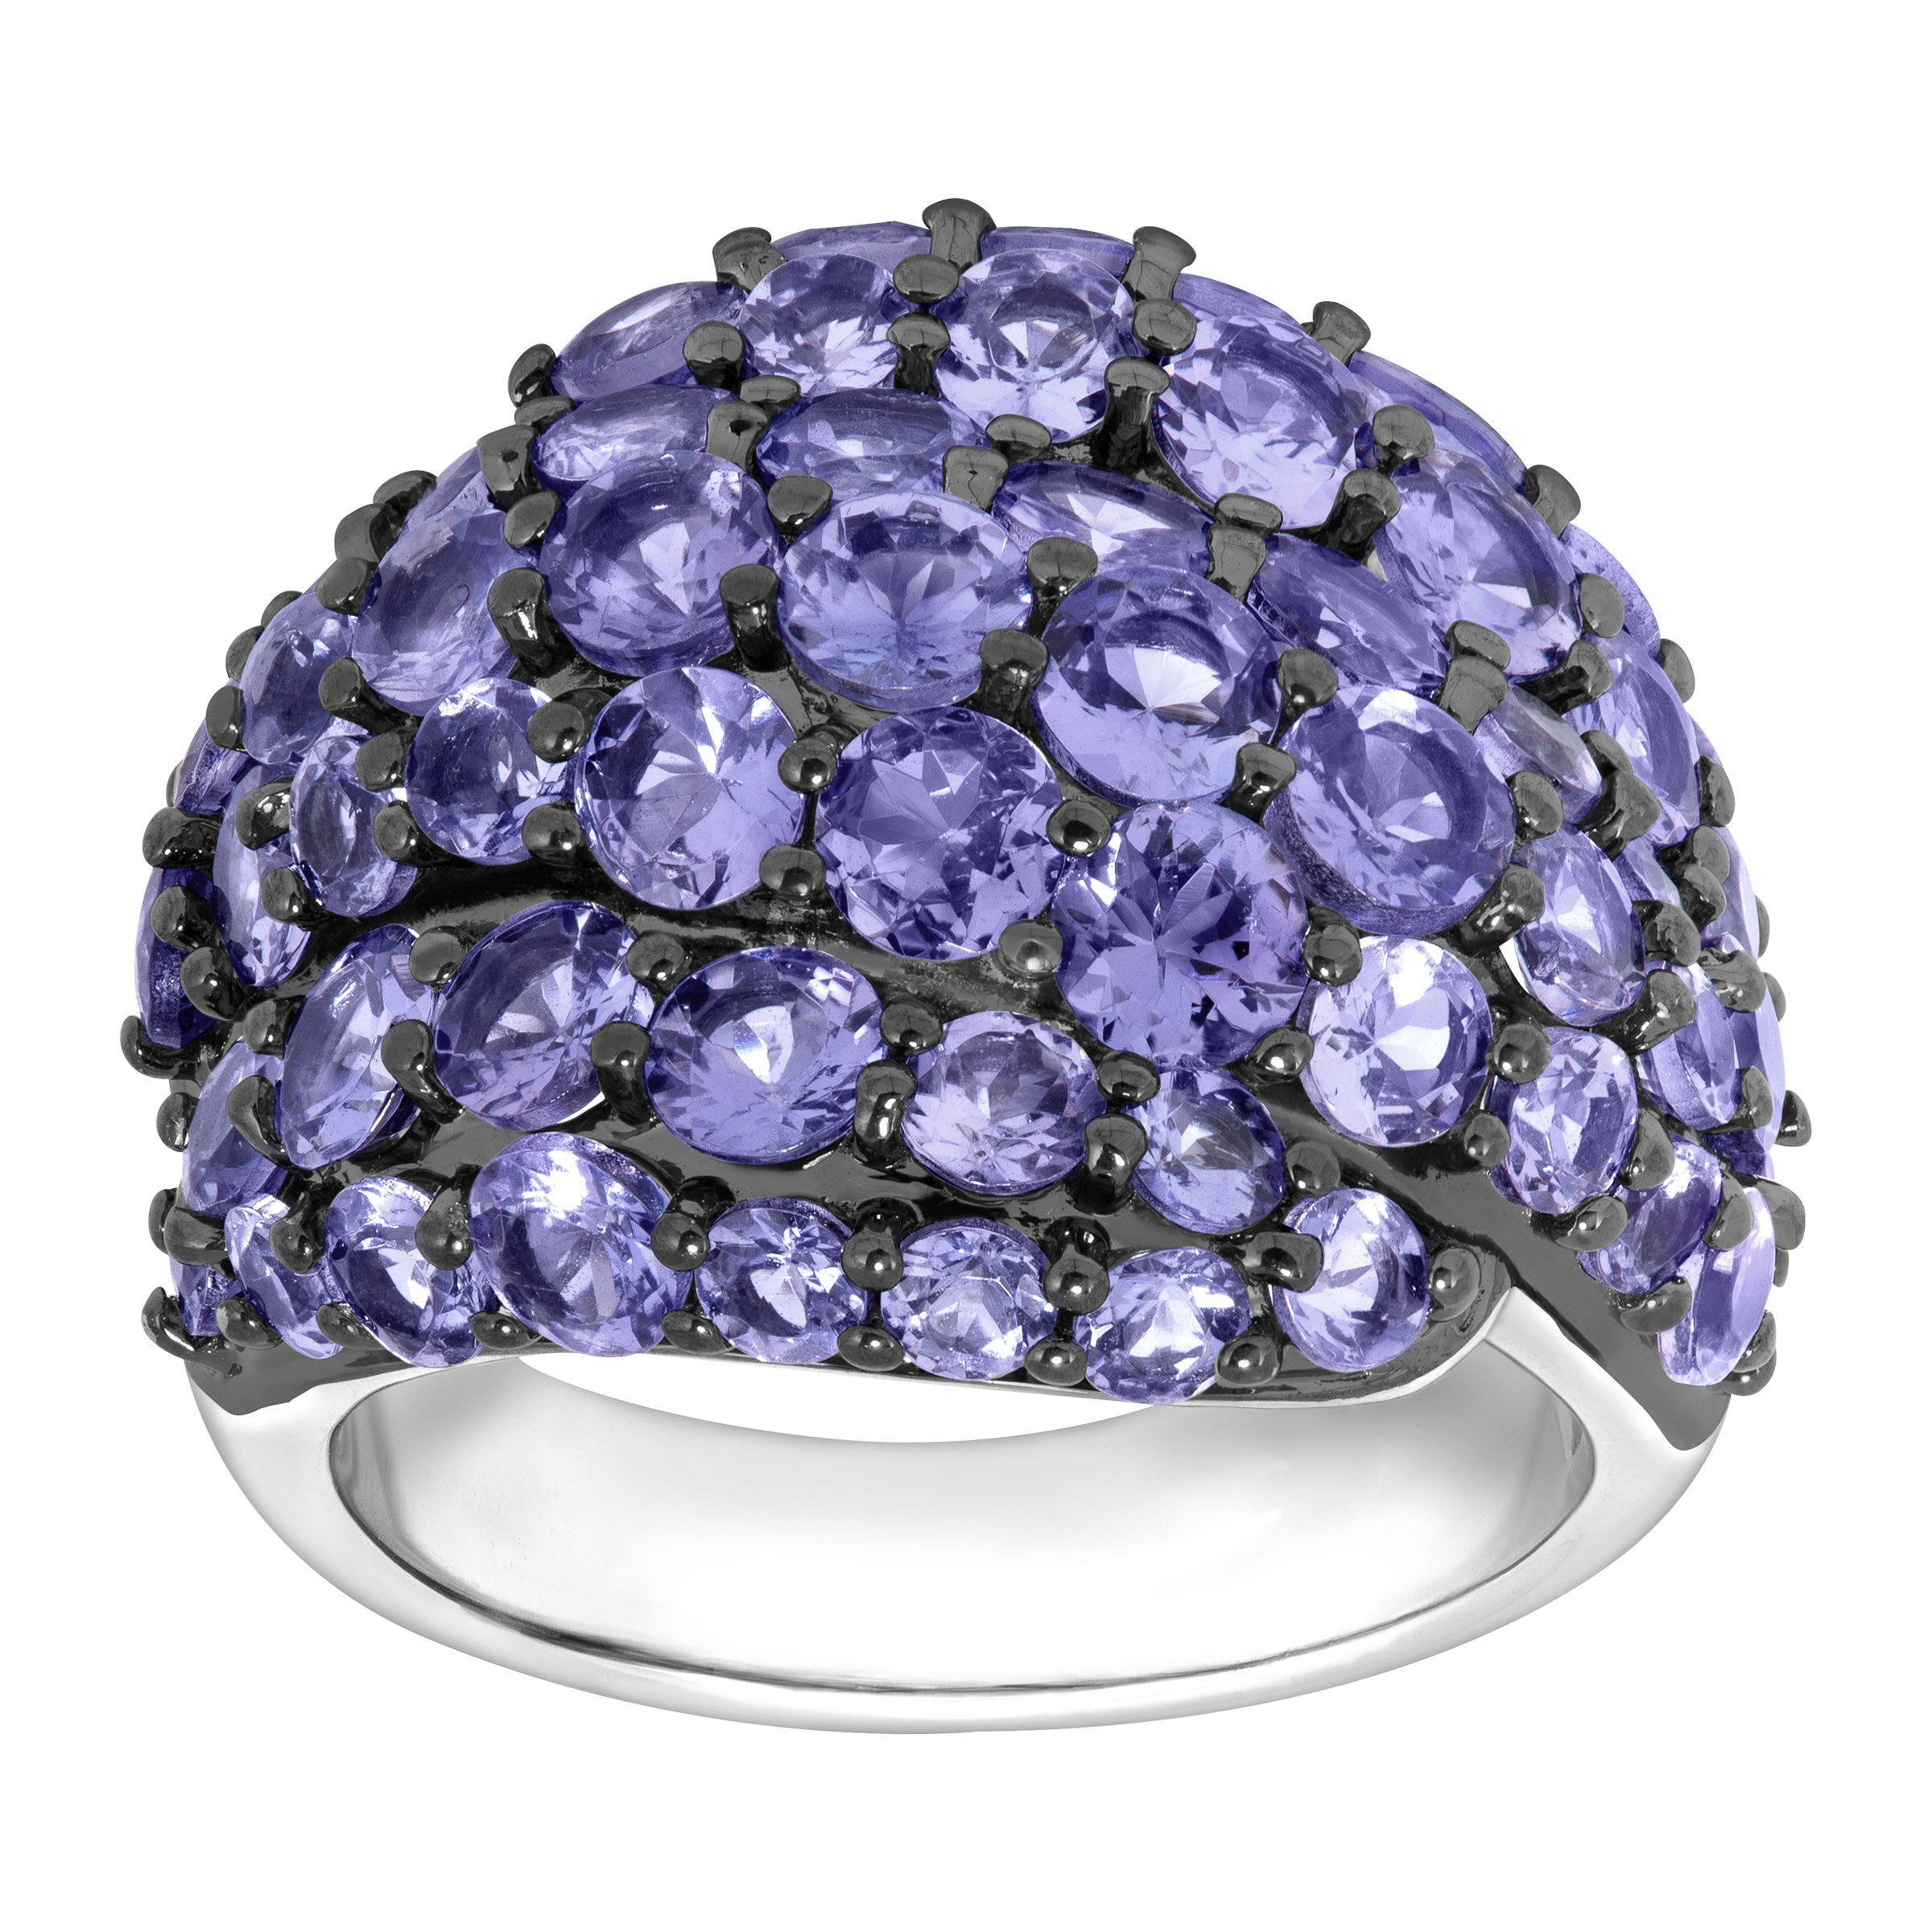 6 1 2 ct Natural Tanzanite Dome Ring in Sterling Silver by Richline Group